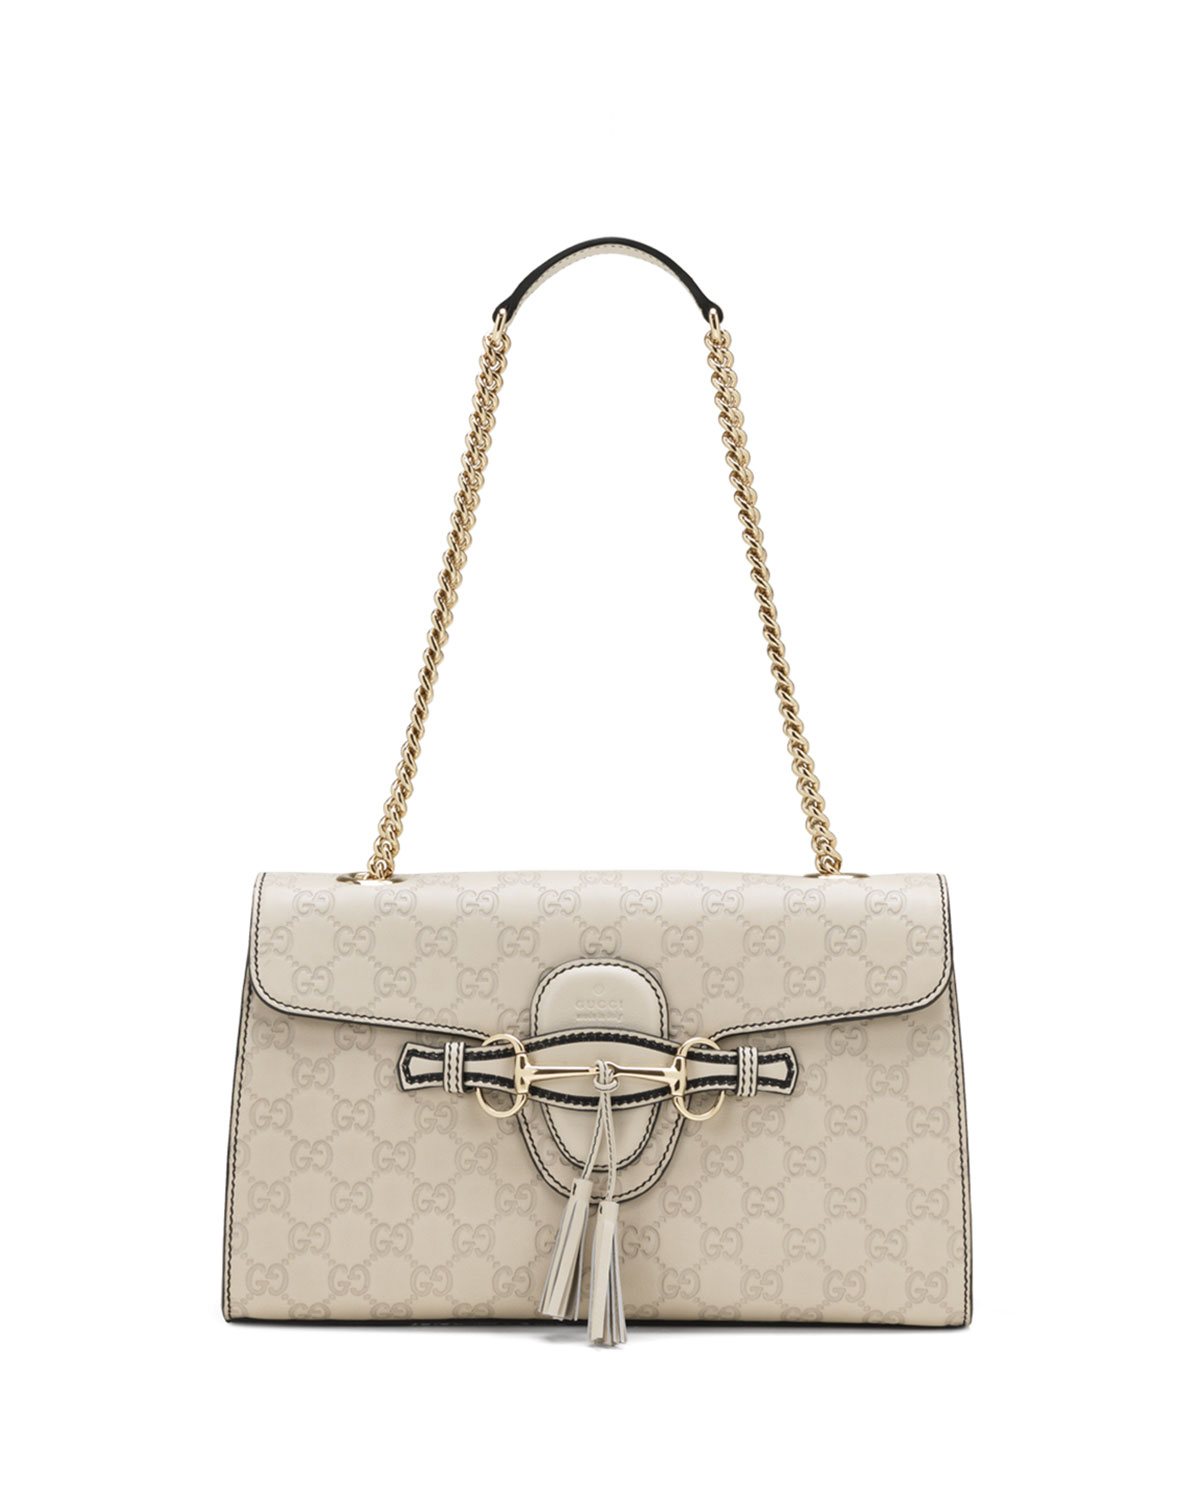 Emily Guccissima Leather Chain Shoulder Bag, White